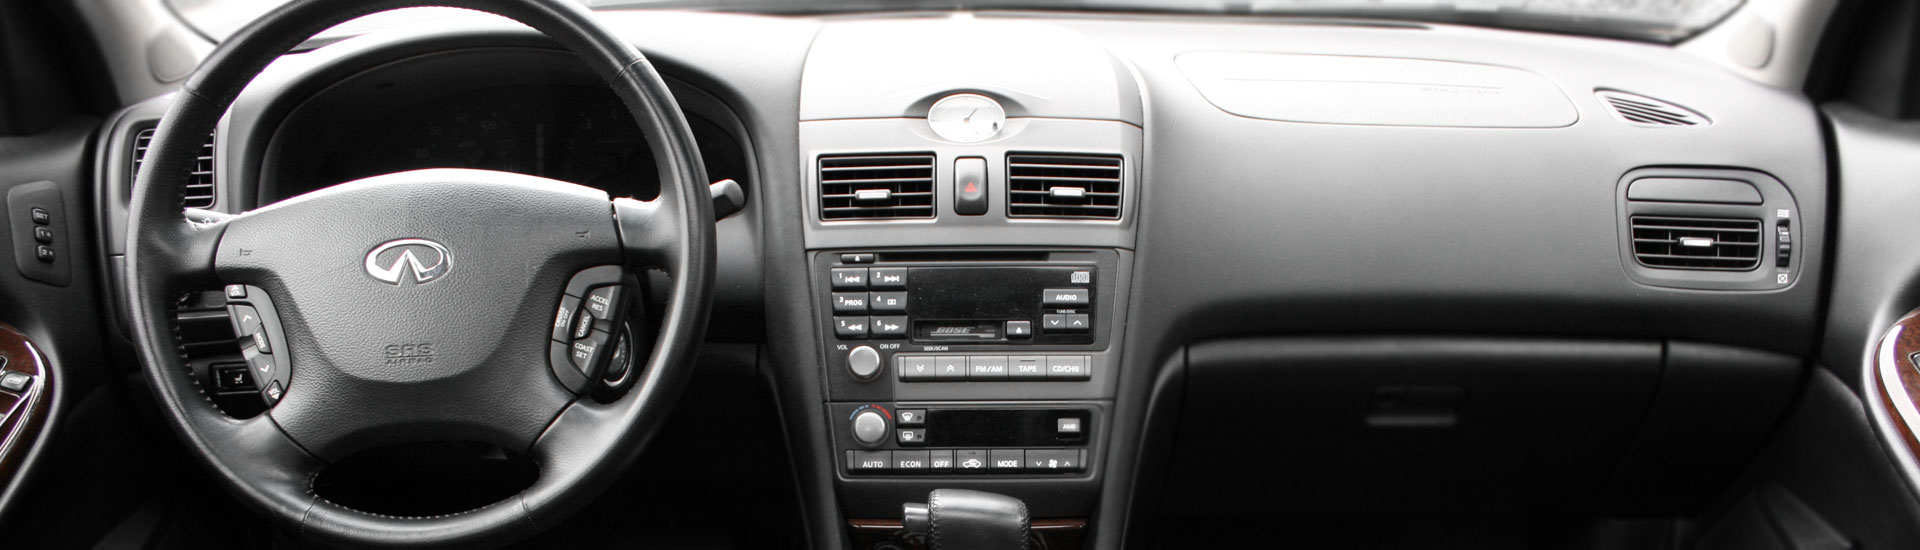 Infiniti I30 Custom Dash Kits